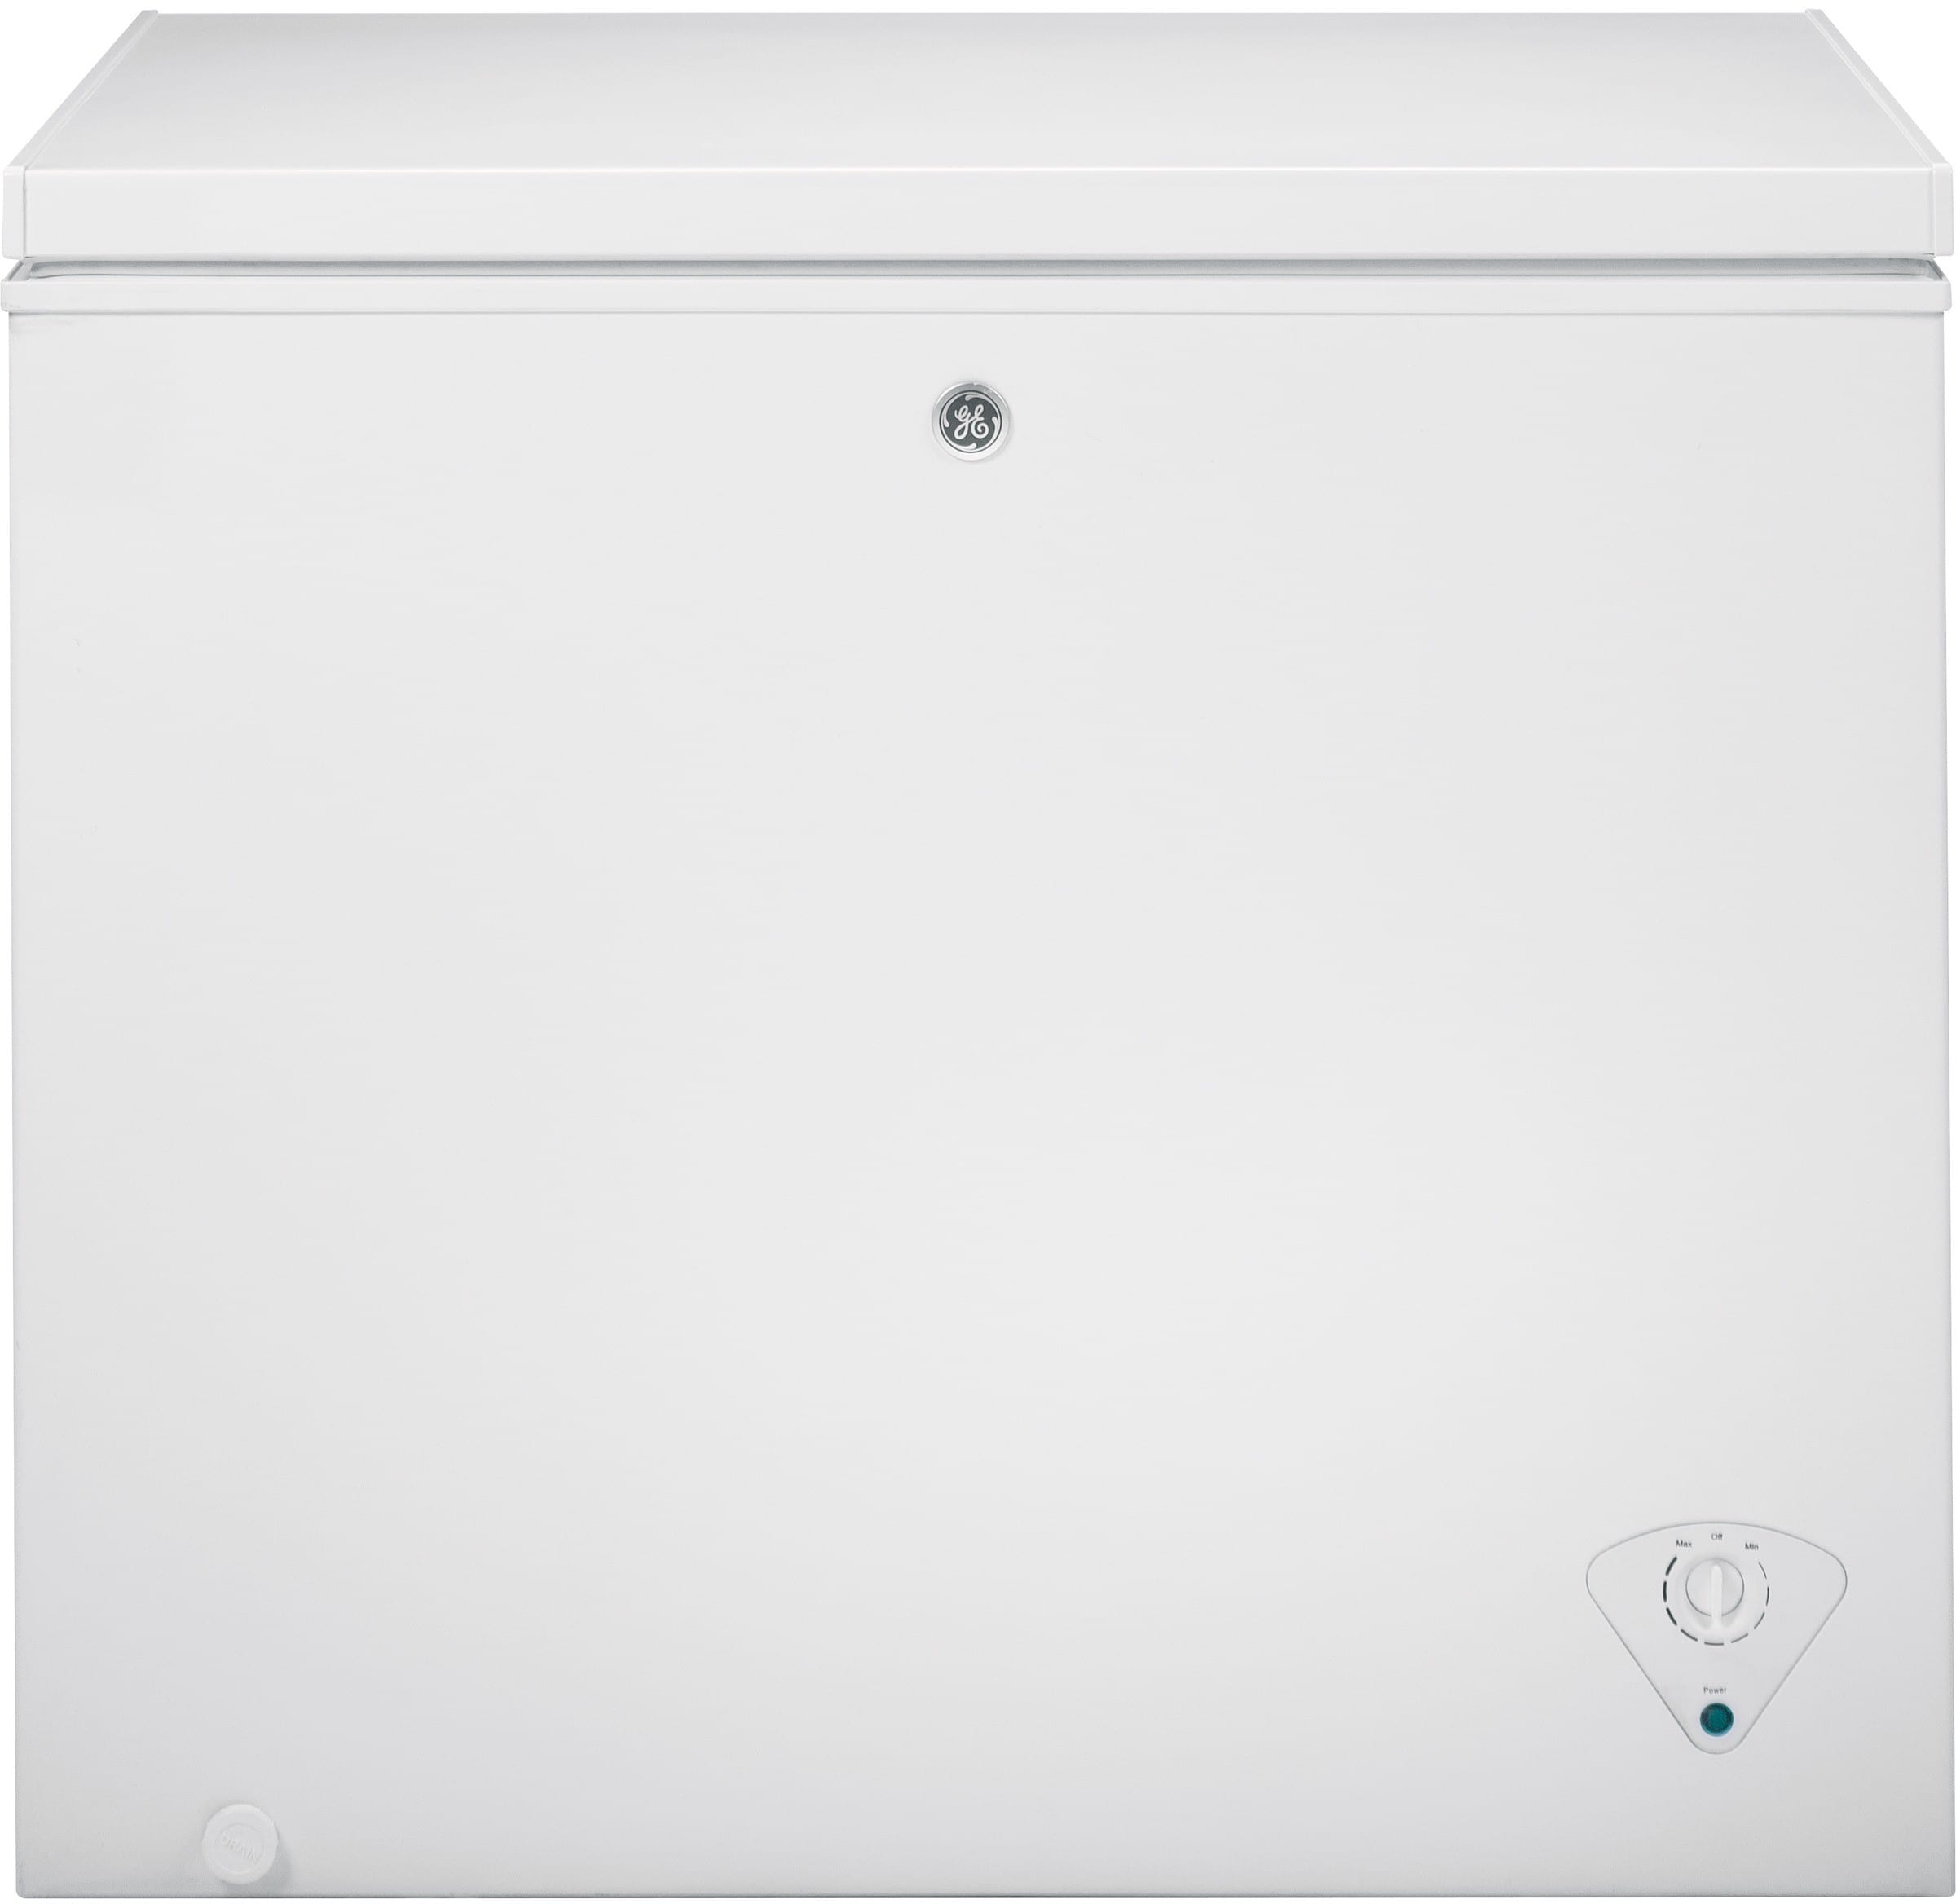 Ge Upright Freezer Manual Ge Fcm7skww 70 Cu Ft Manual Defrost Chest Freezer With 2 Lift